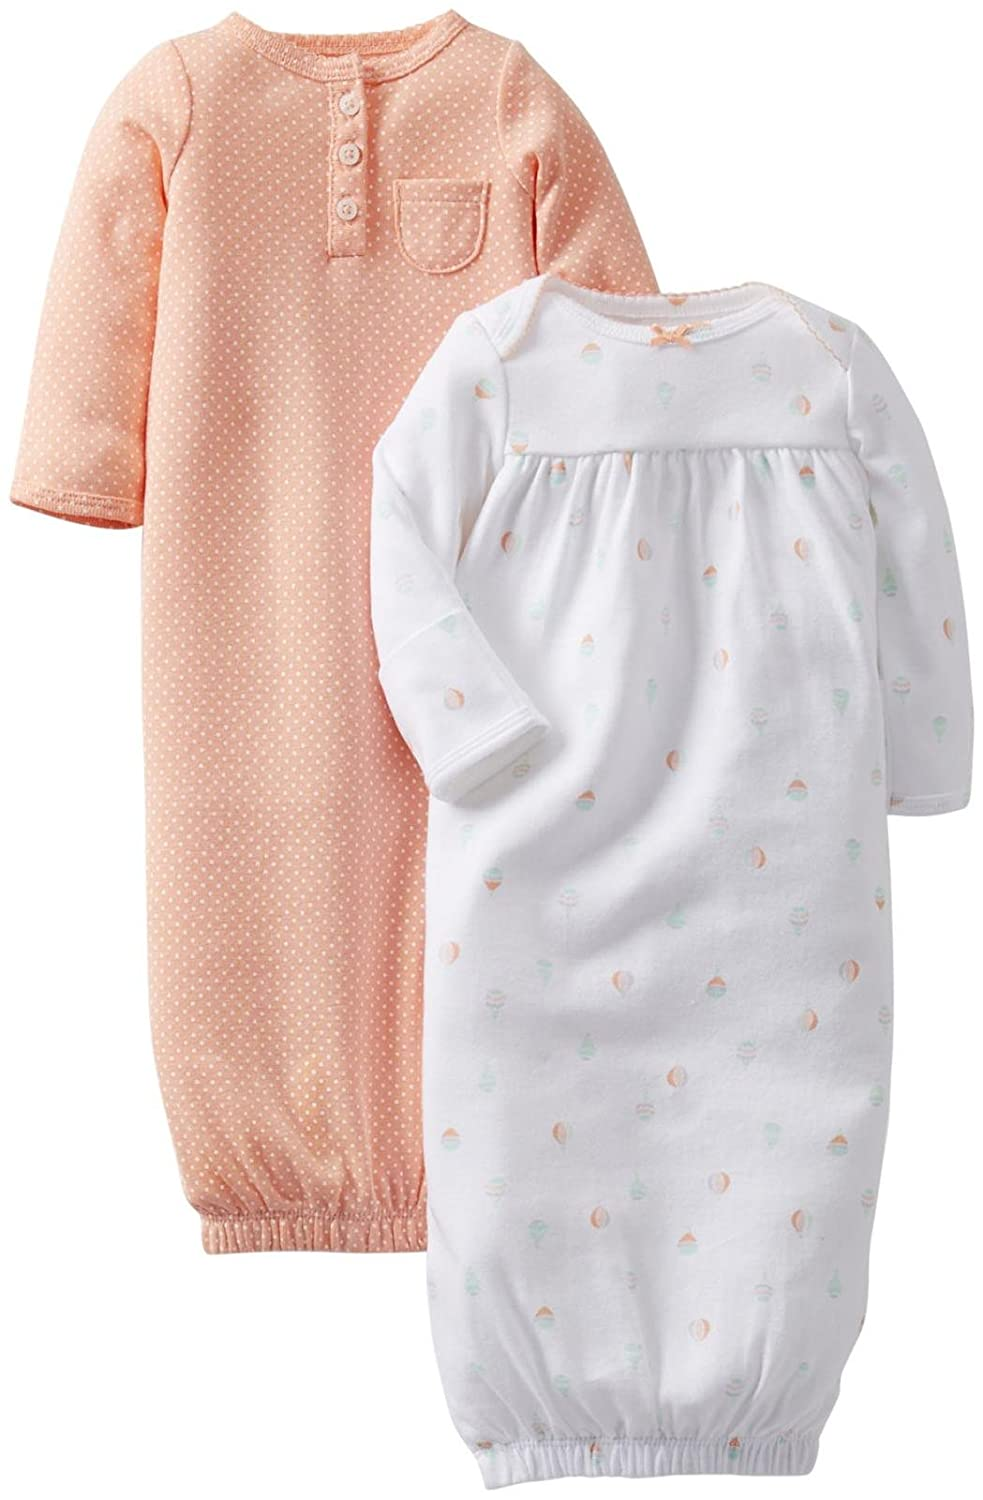 White Baby Gowns | www.topsimages.com